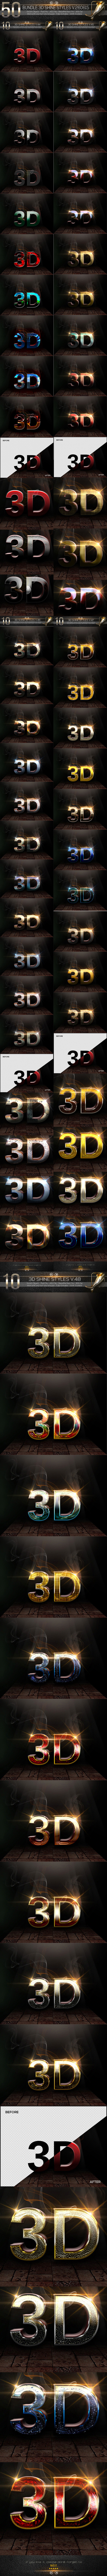 50 Bundle 3D Text Style V.260615 - Text Effects Styles